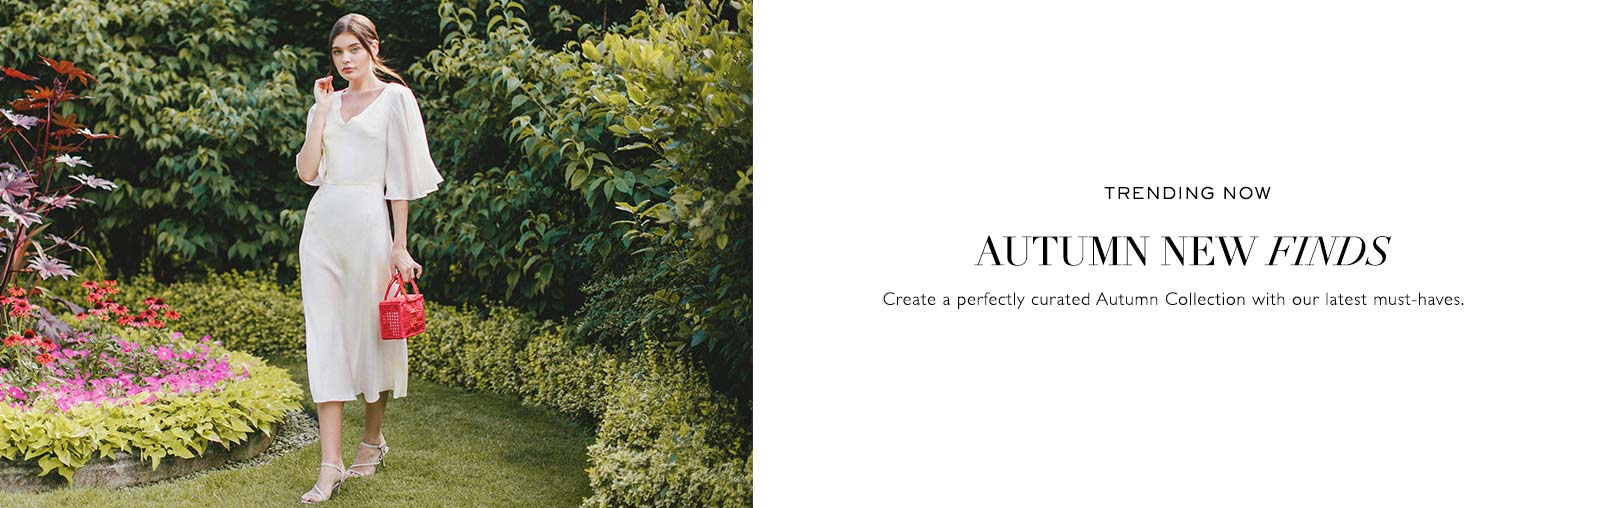 TRENDING NOW | AUTUMN NEW FINDS | Create a perfect Autumn Collection with our latest must-haves.